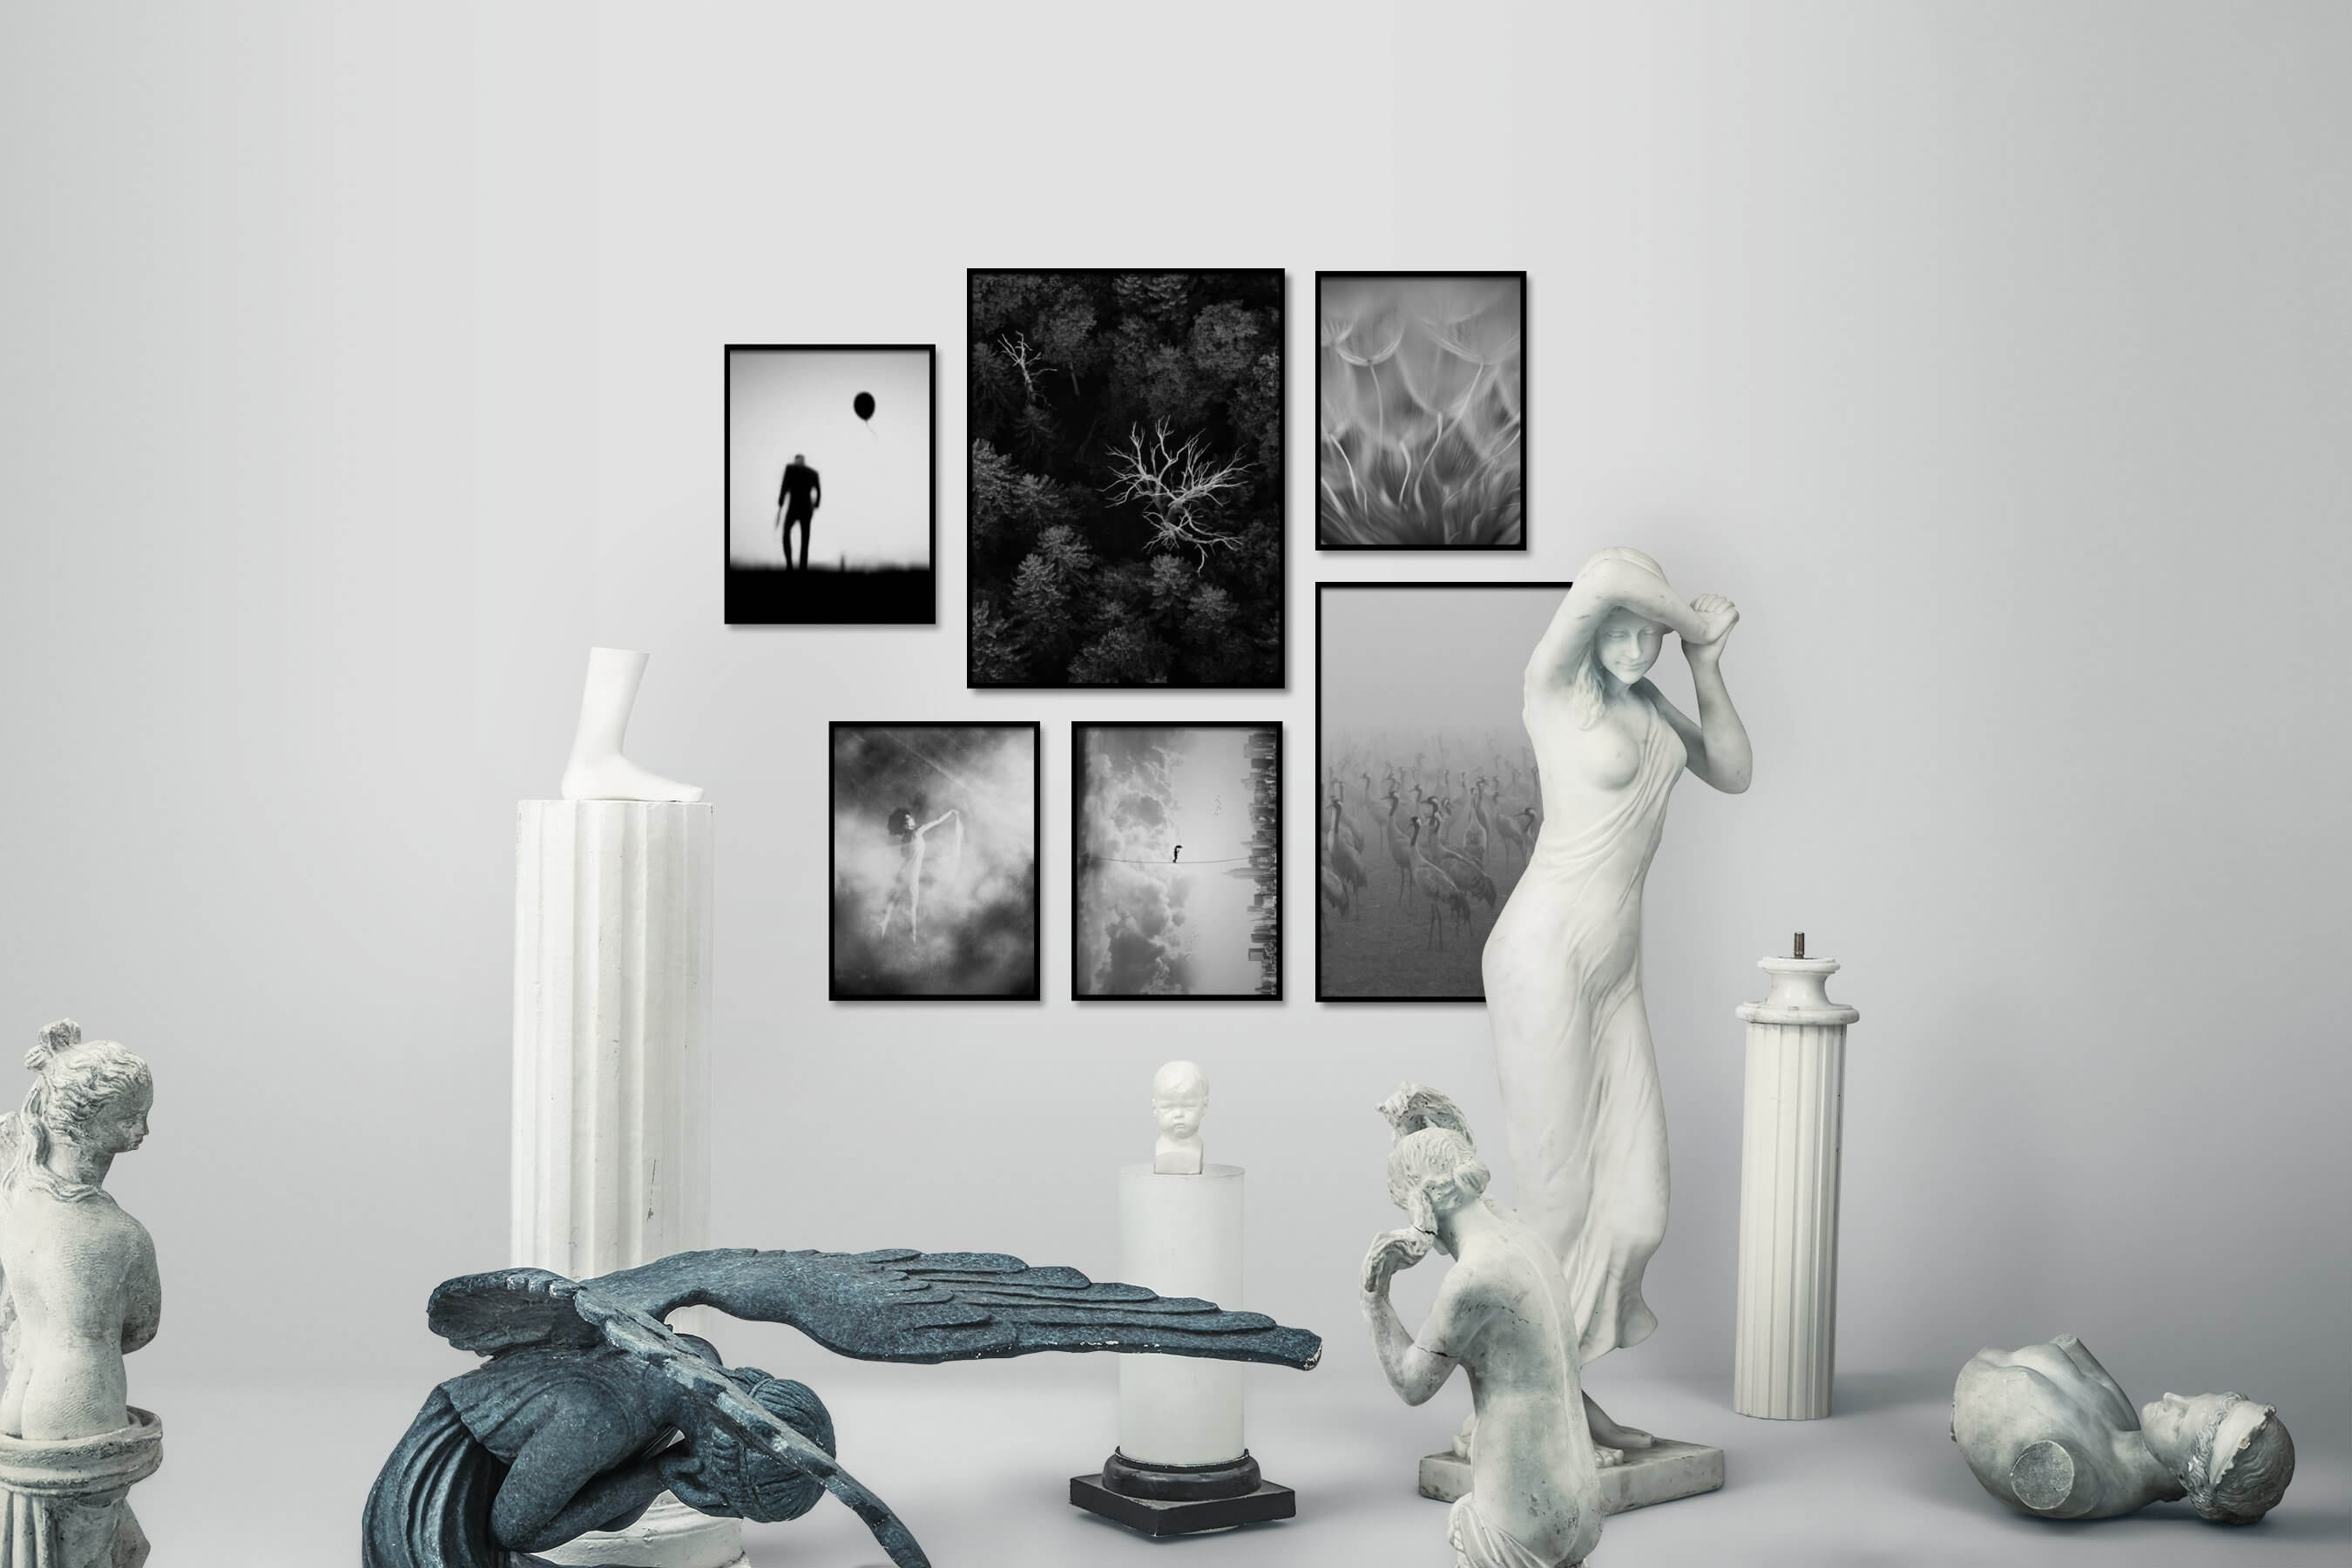 Gallery wall idea with six framed pictures arranged on a wall depicting Black & White, For the Minimalist, For the Moderate, Nature, Fashion & Beauty, Artsy, City Life, Flowers & Plants, Mindfulness, and Animals